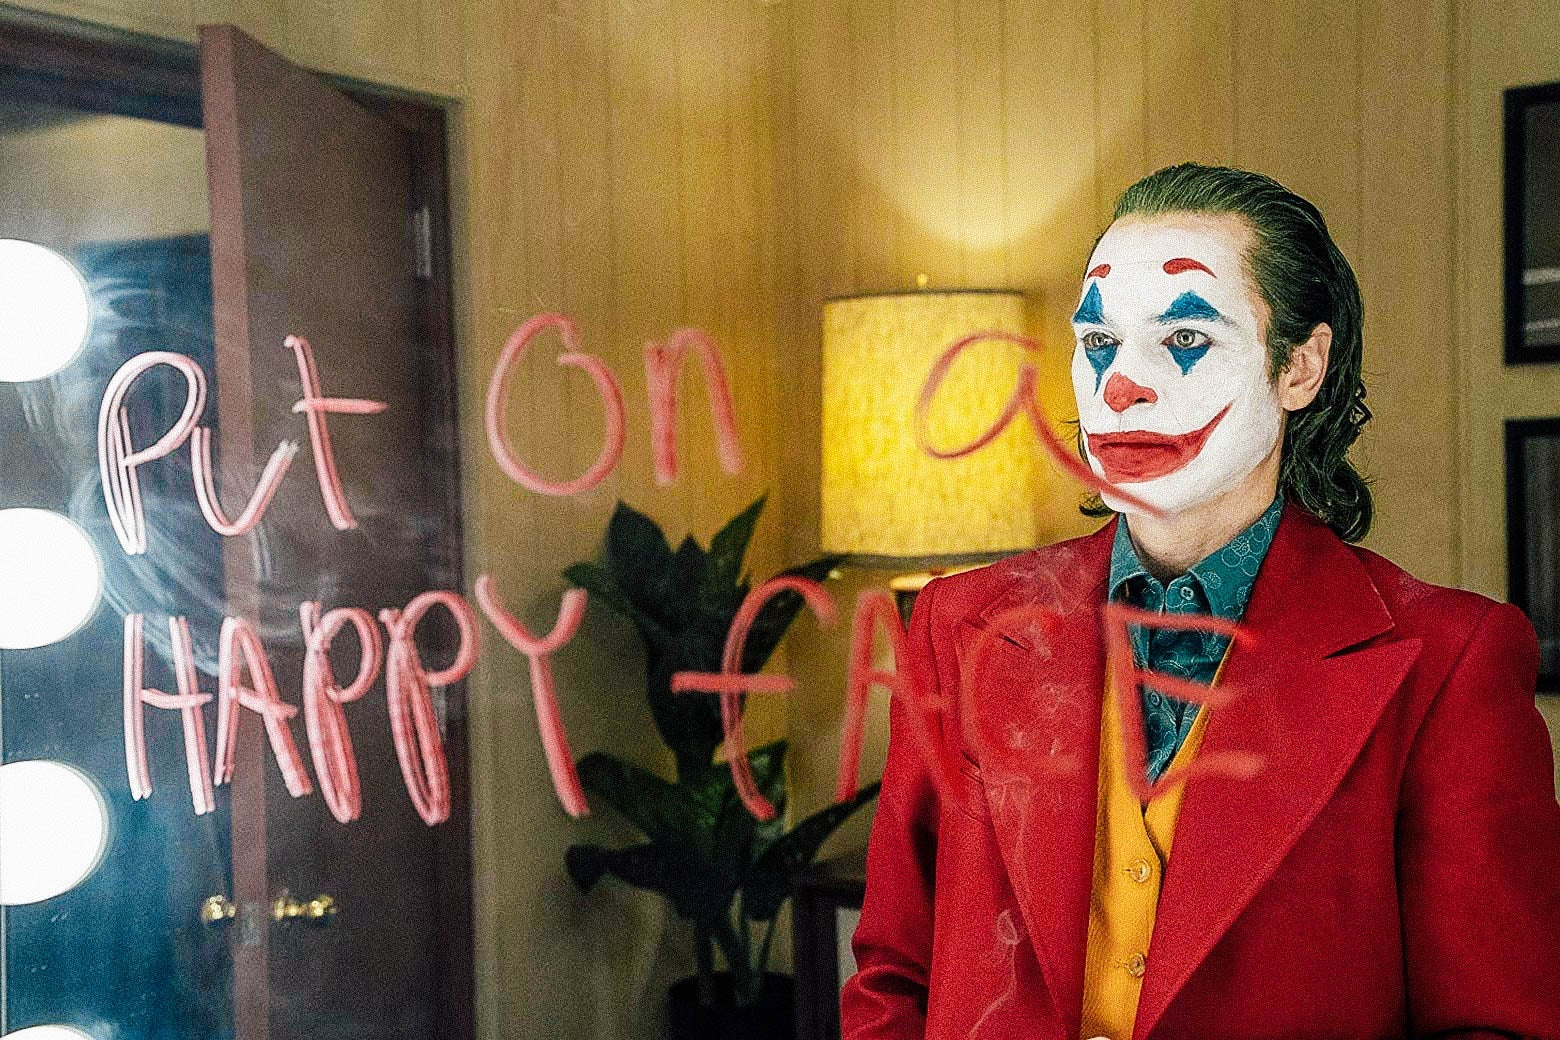 Joker movie review Don\u0027t skip it over fears of violence